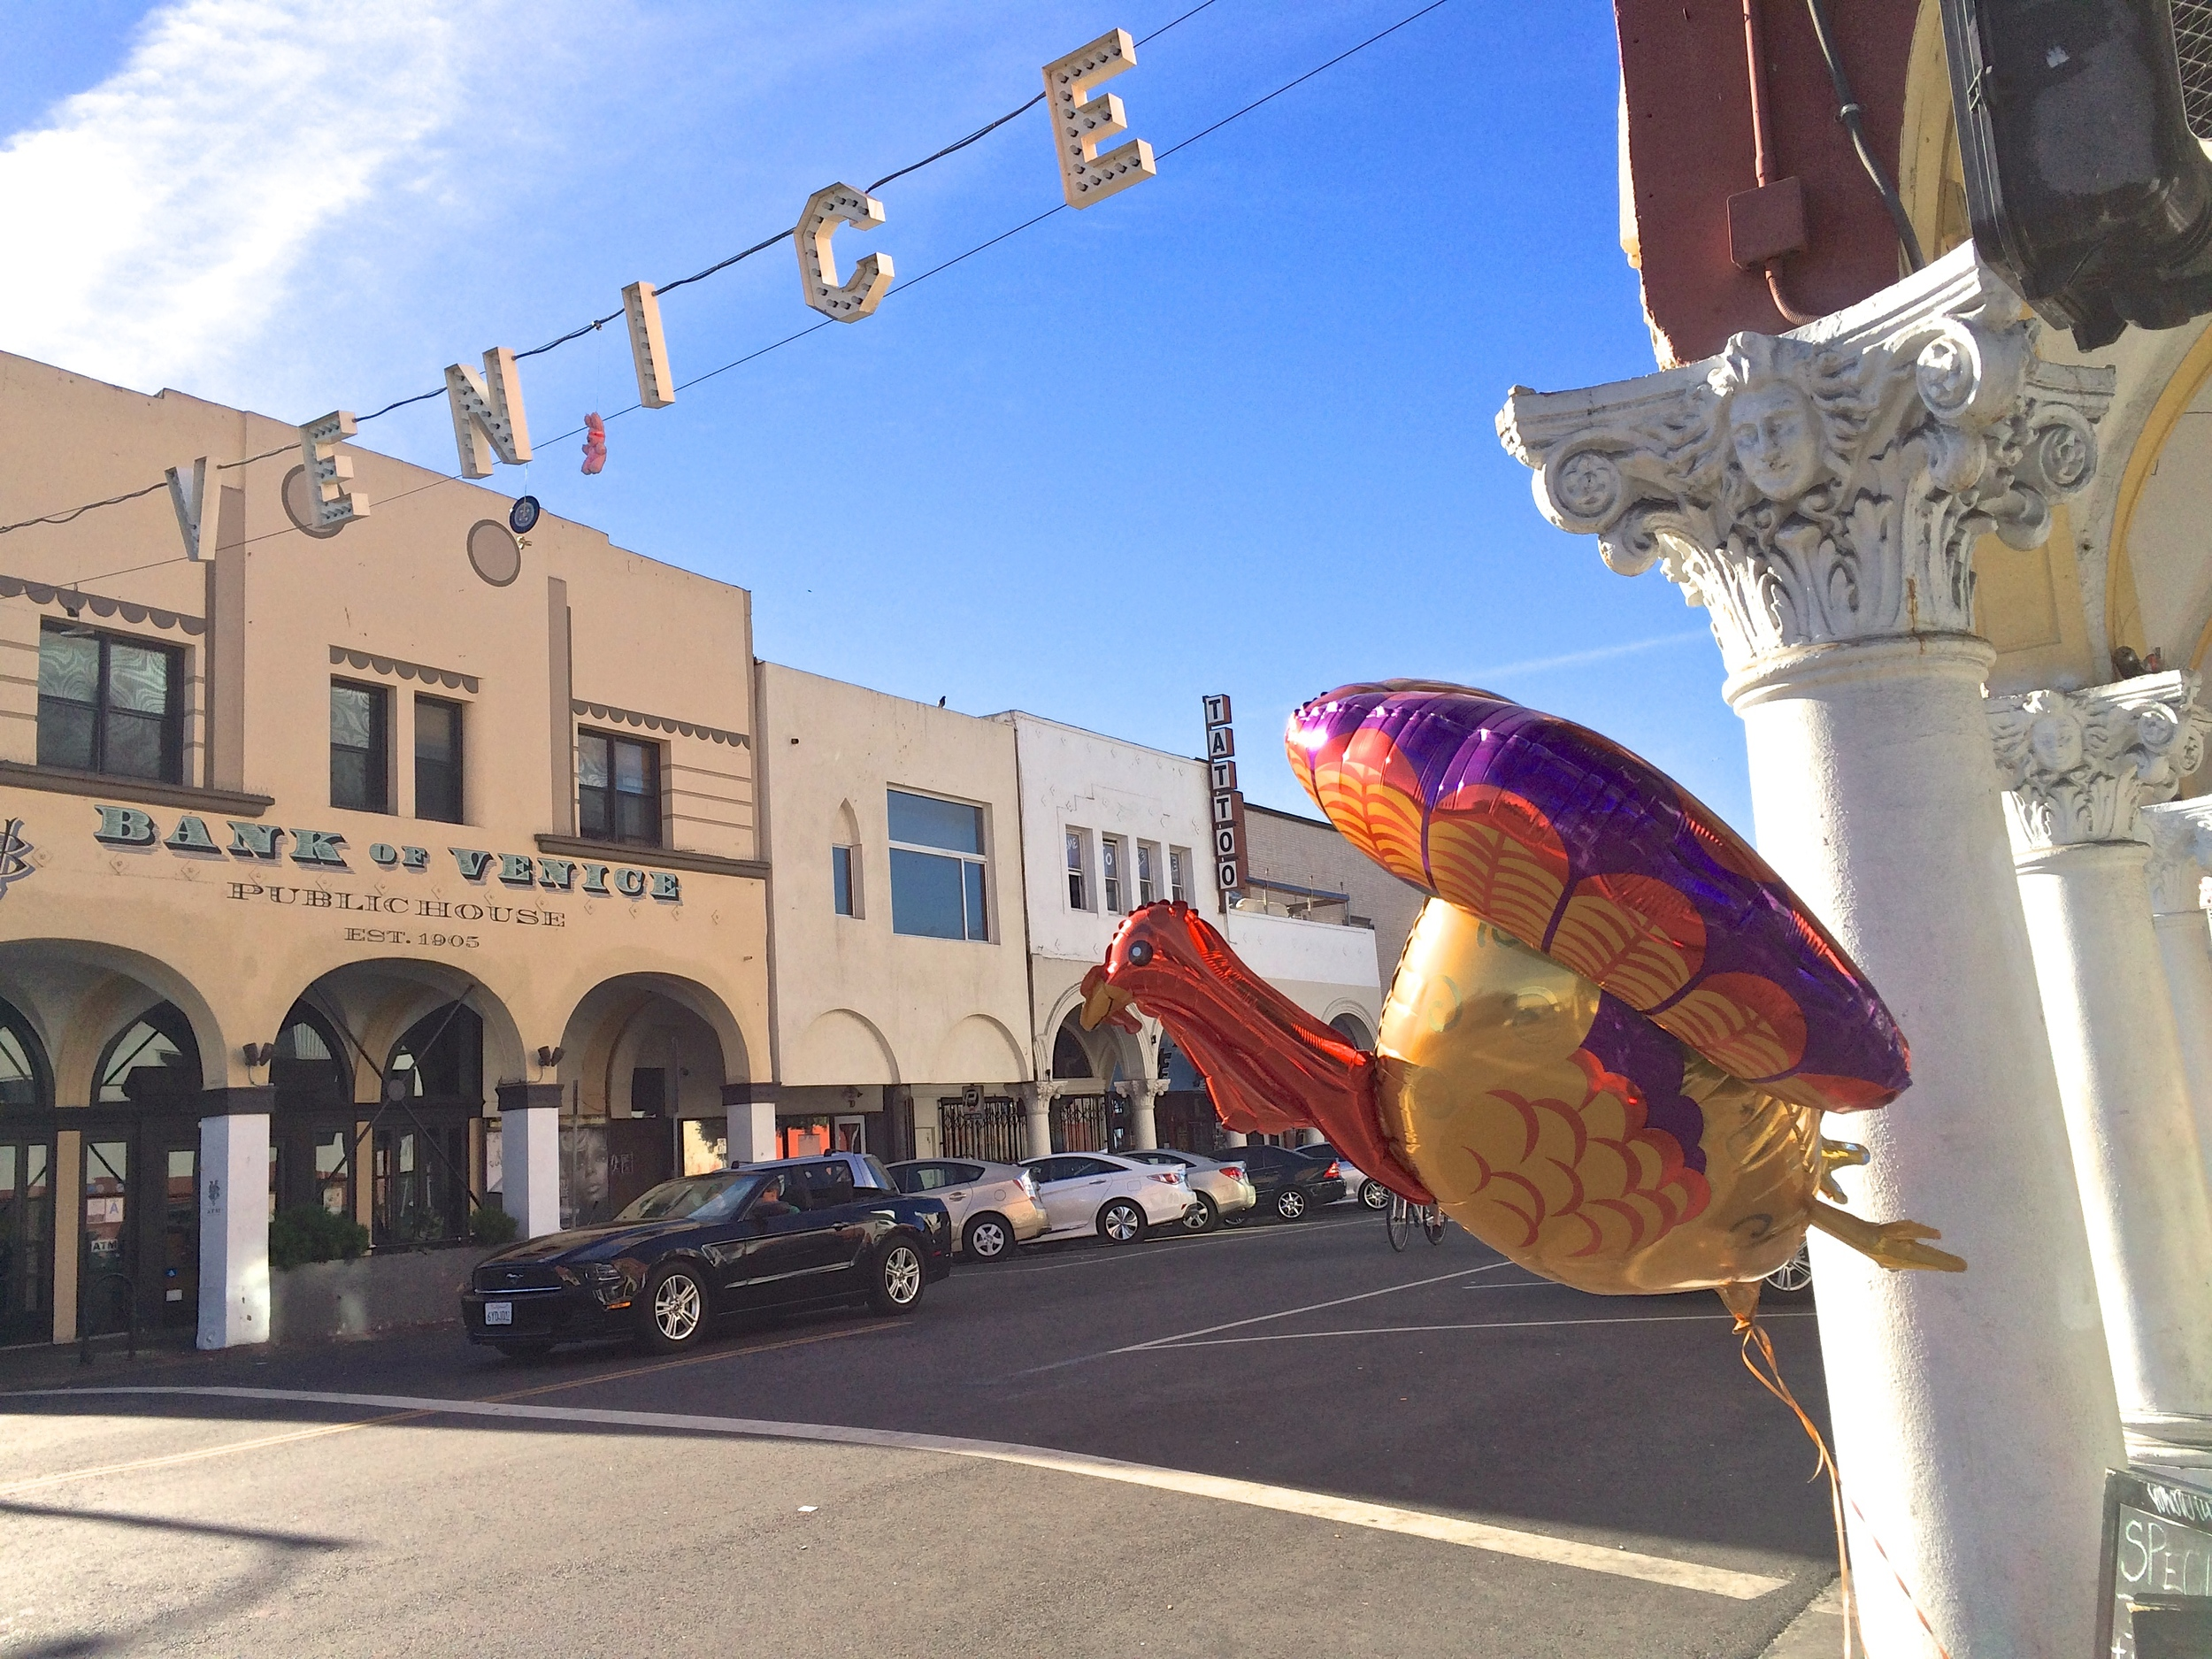 Turkey Day balloon at Pacific and Windward. (  Photo by Glennie Rabin  )